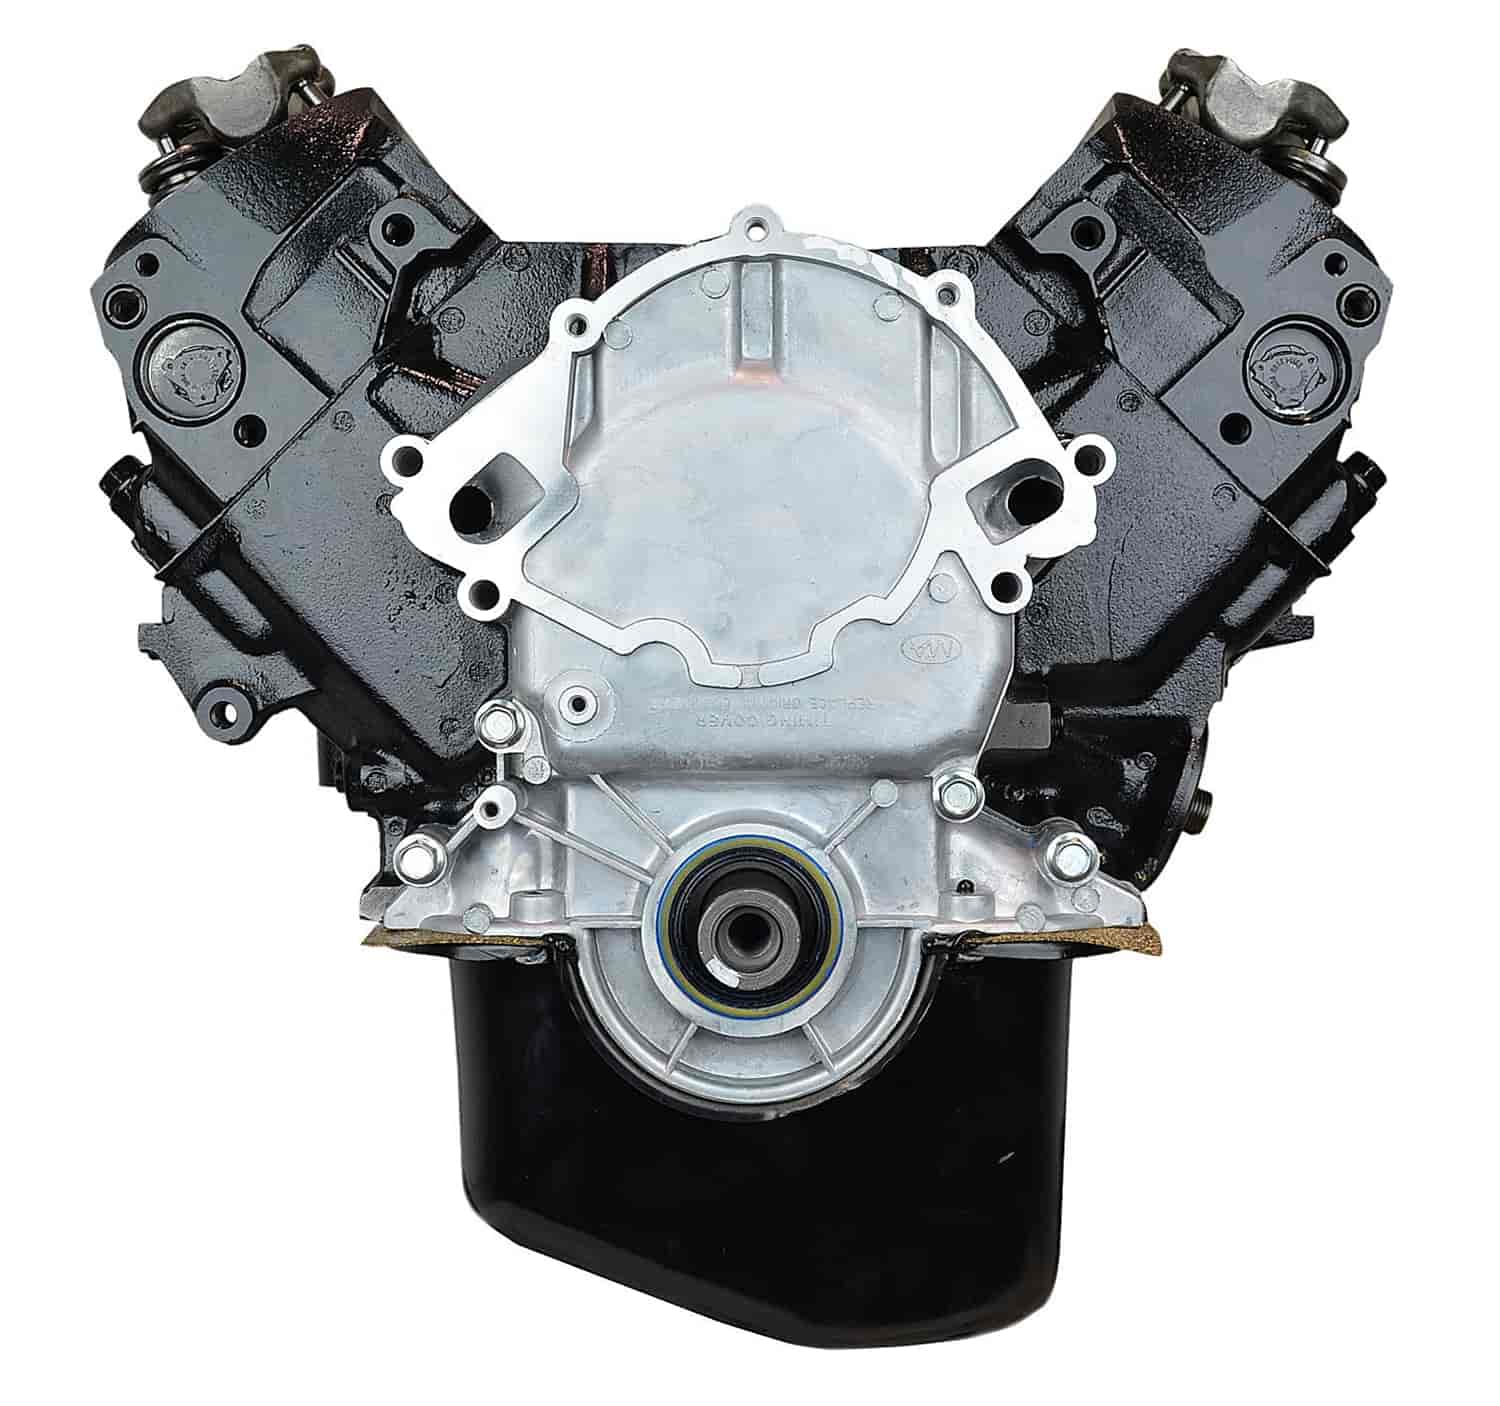 ATK Engines Remanufactured Crate Engine for 1988-1993 Ford F-Series Truck &  E-Series Van with 351W V8